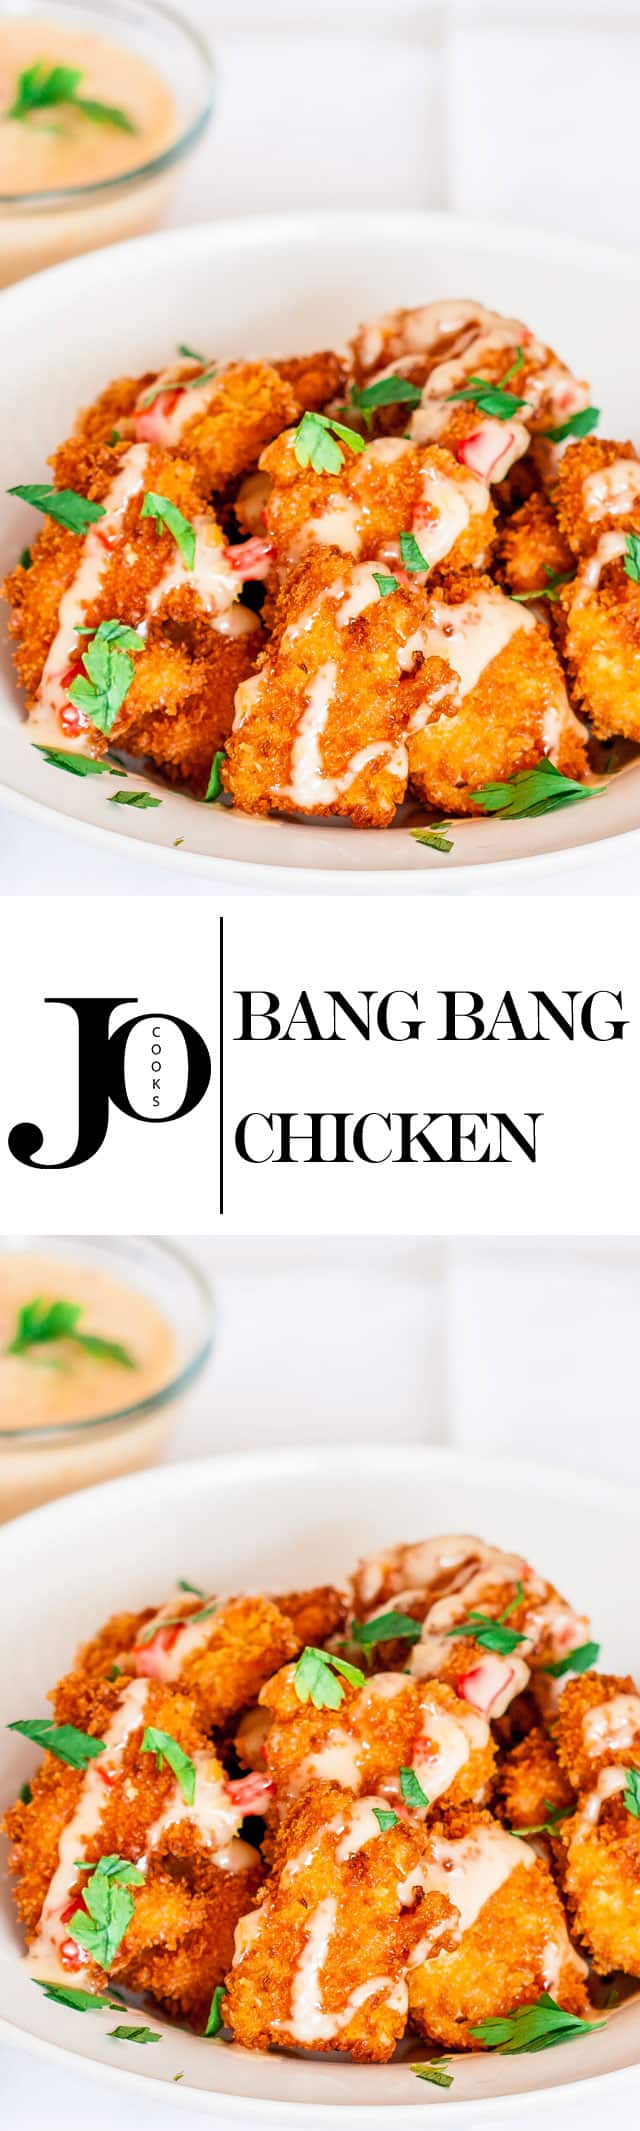 Bang Bang Chicken - From the Panko breading to the sweet chili mayo, this recipe is perfection!